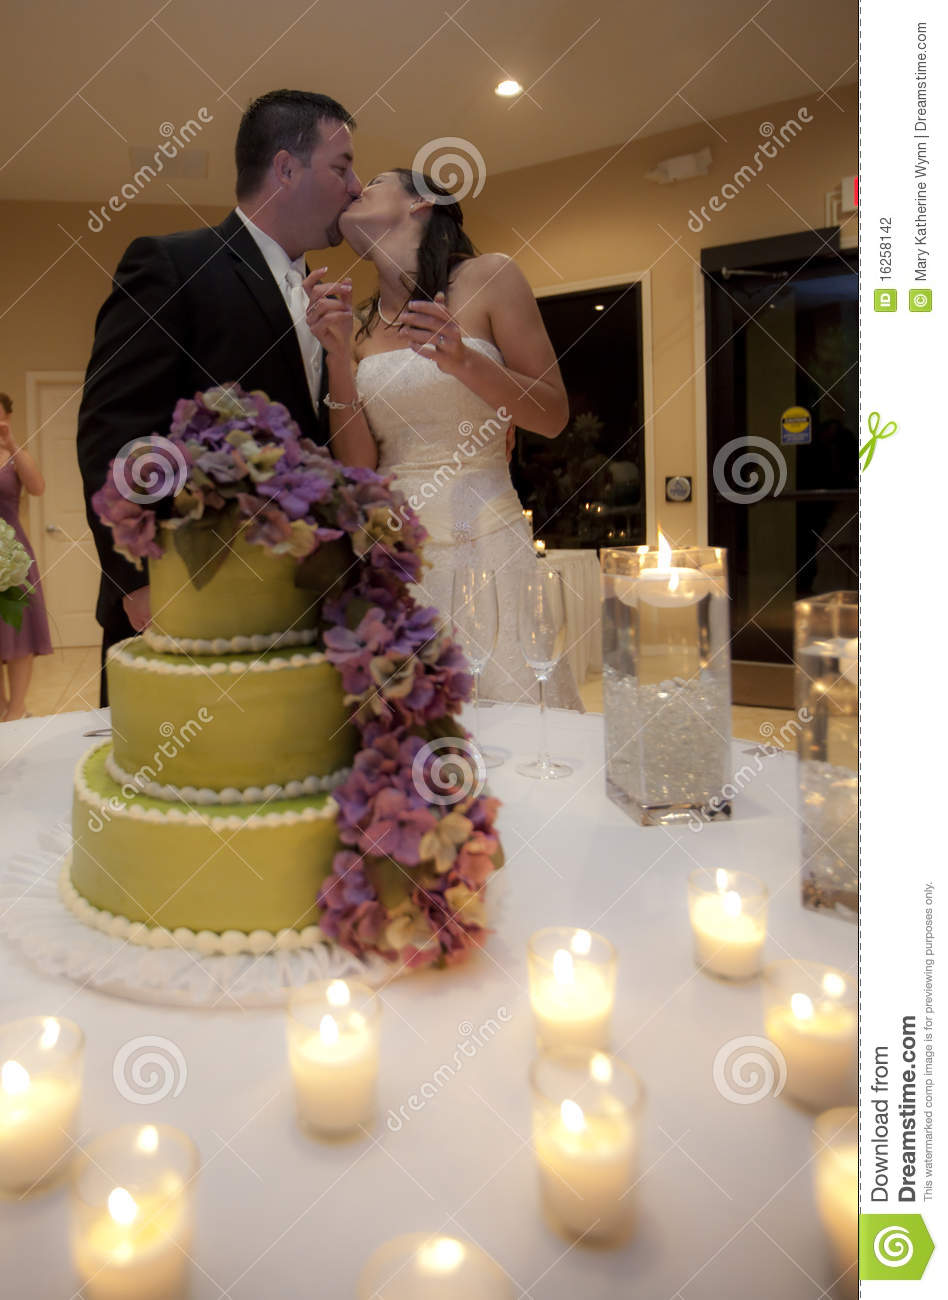 wedding cake couple wedding by cake stock photography image 22260